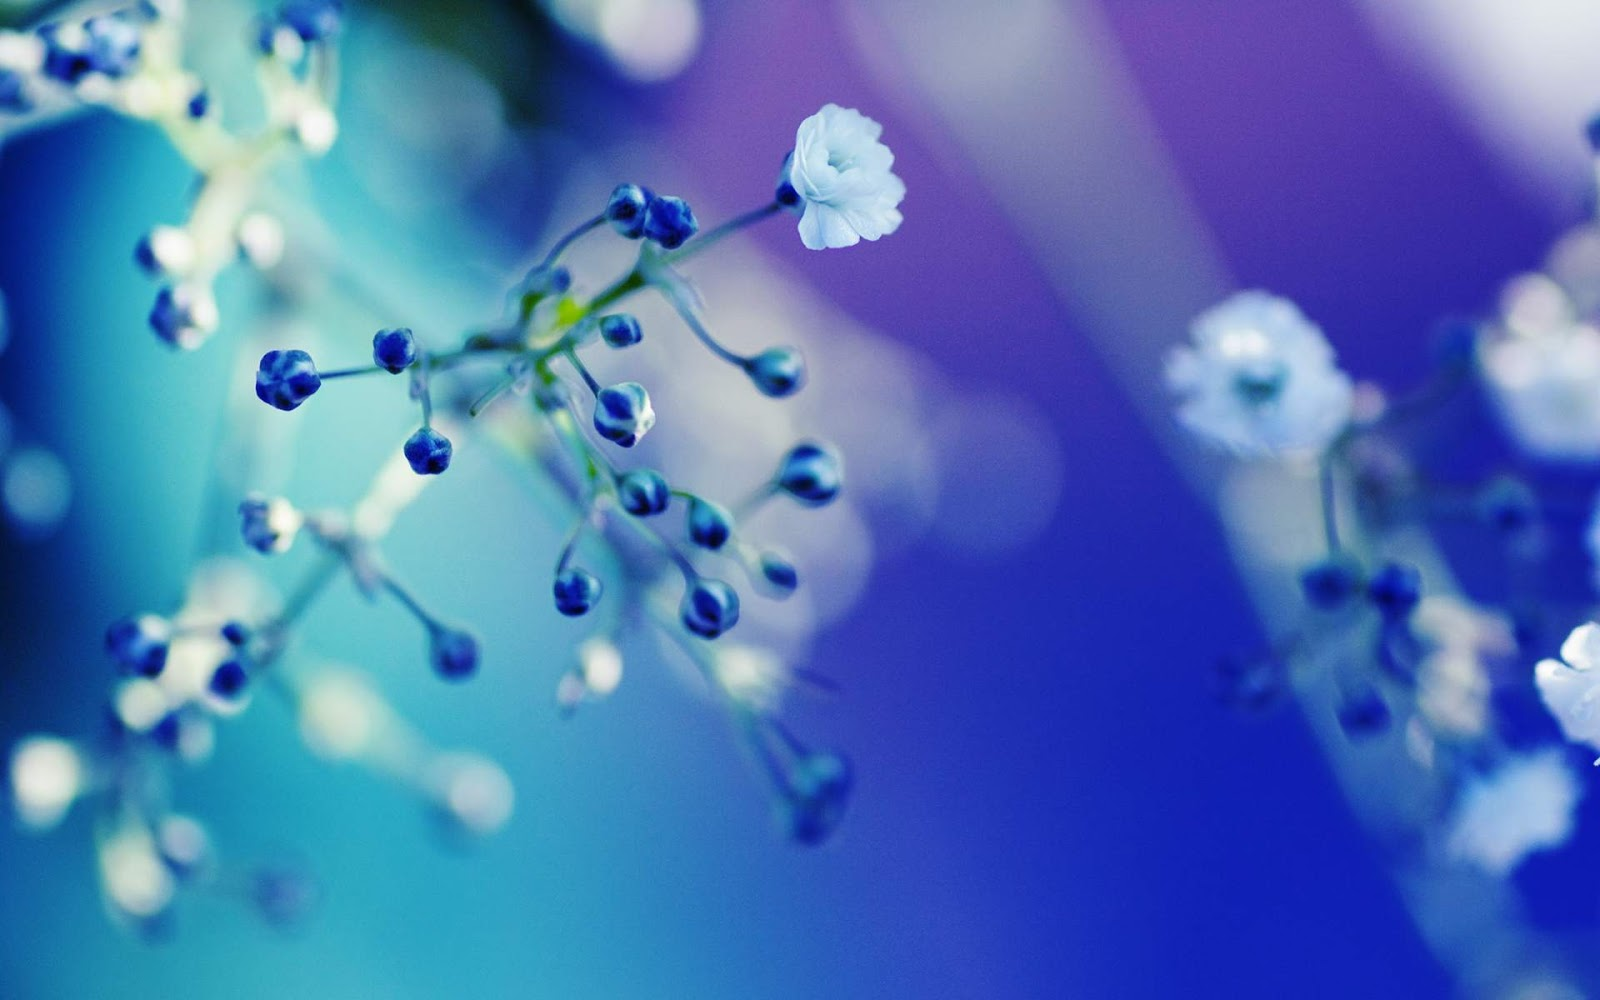 Blue Flowers Close Up Wallpapers Amazing Wallpapers 1600x1000